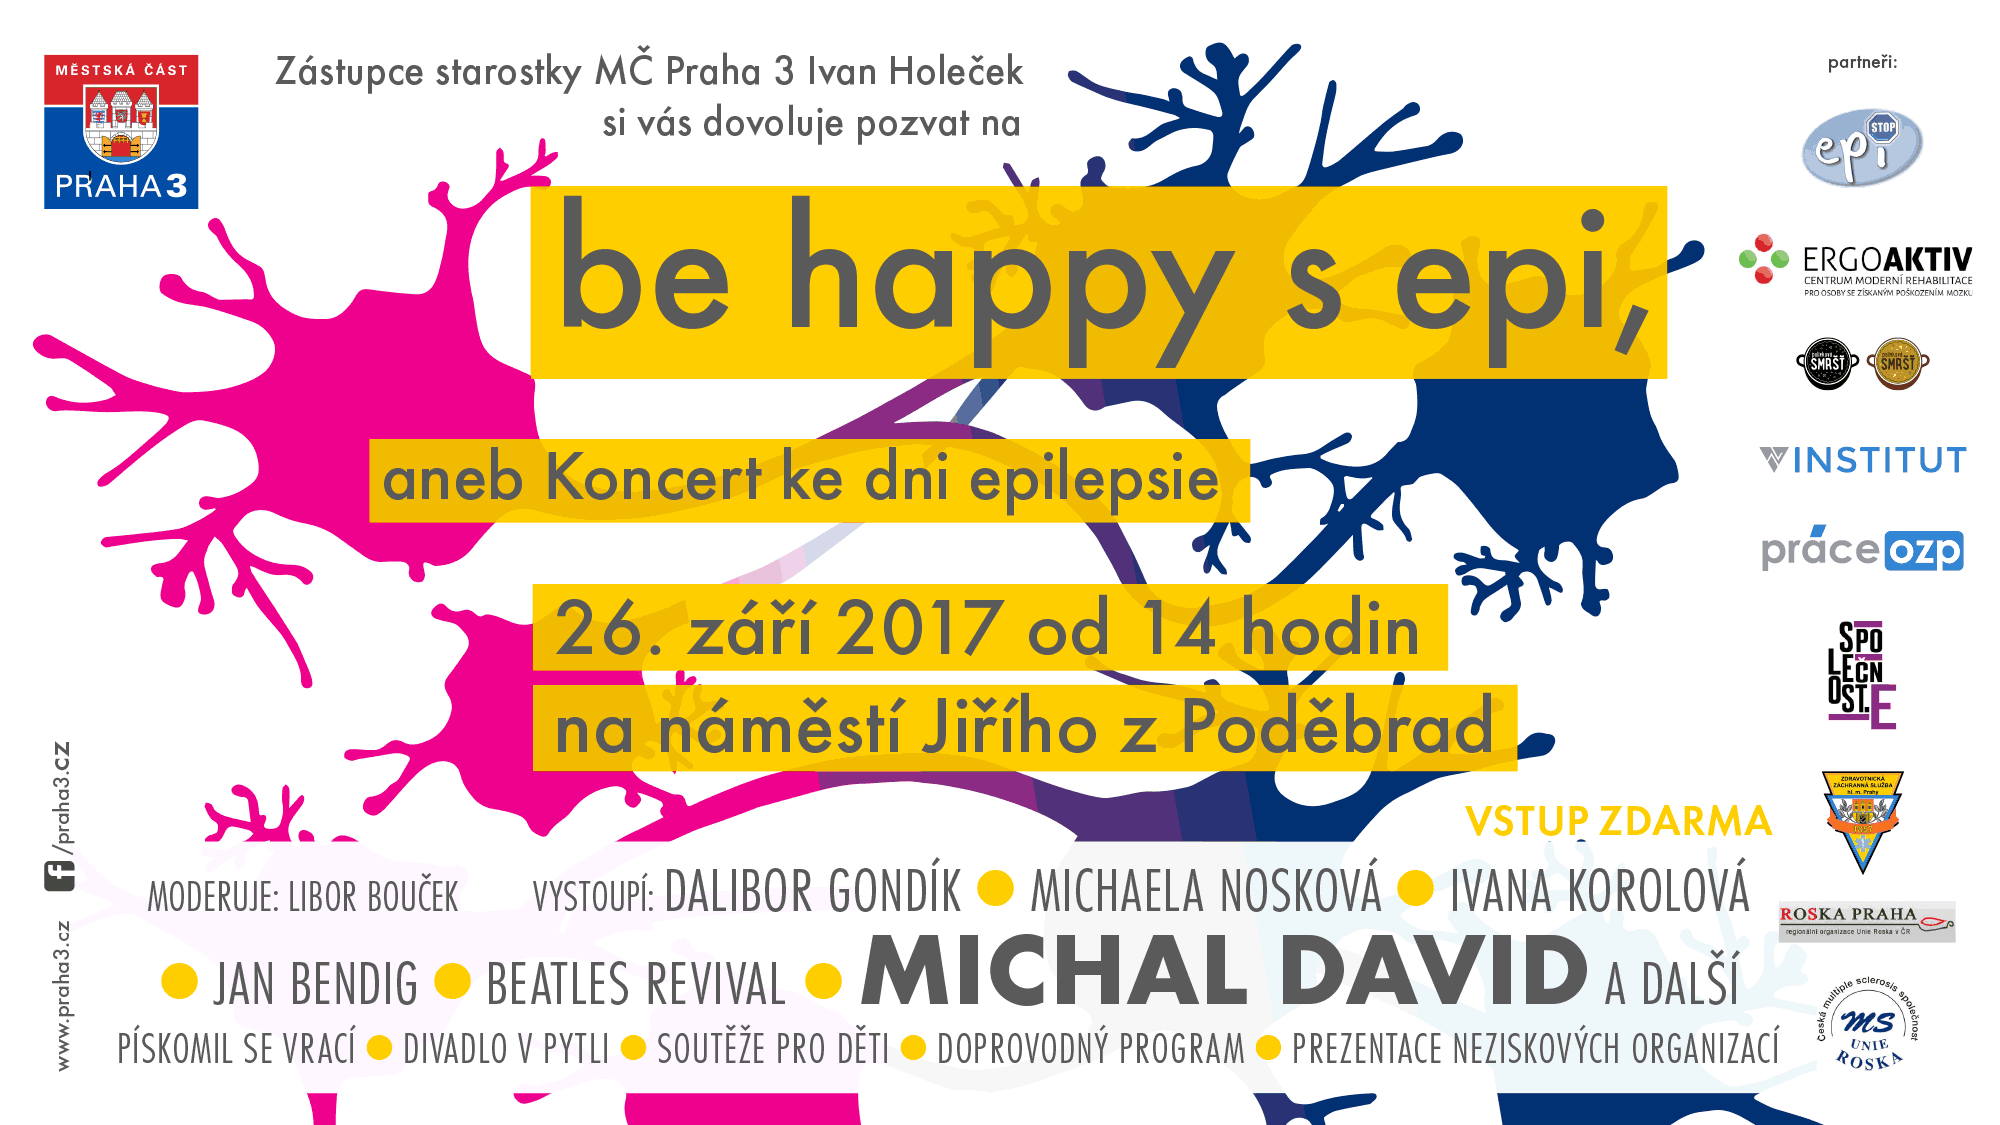 be happy s epi 2017 FHD 1920x1080 v1508